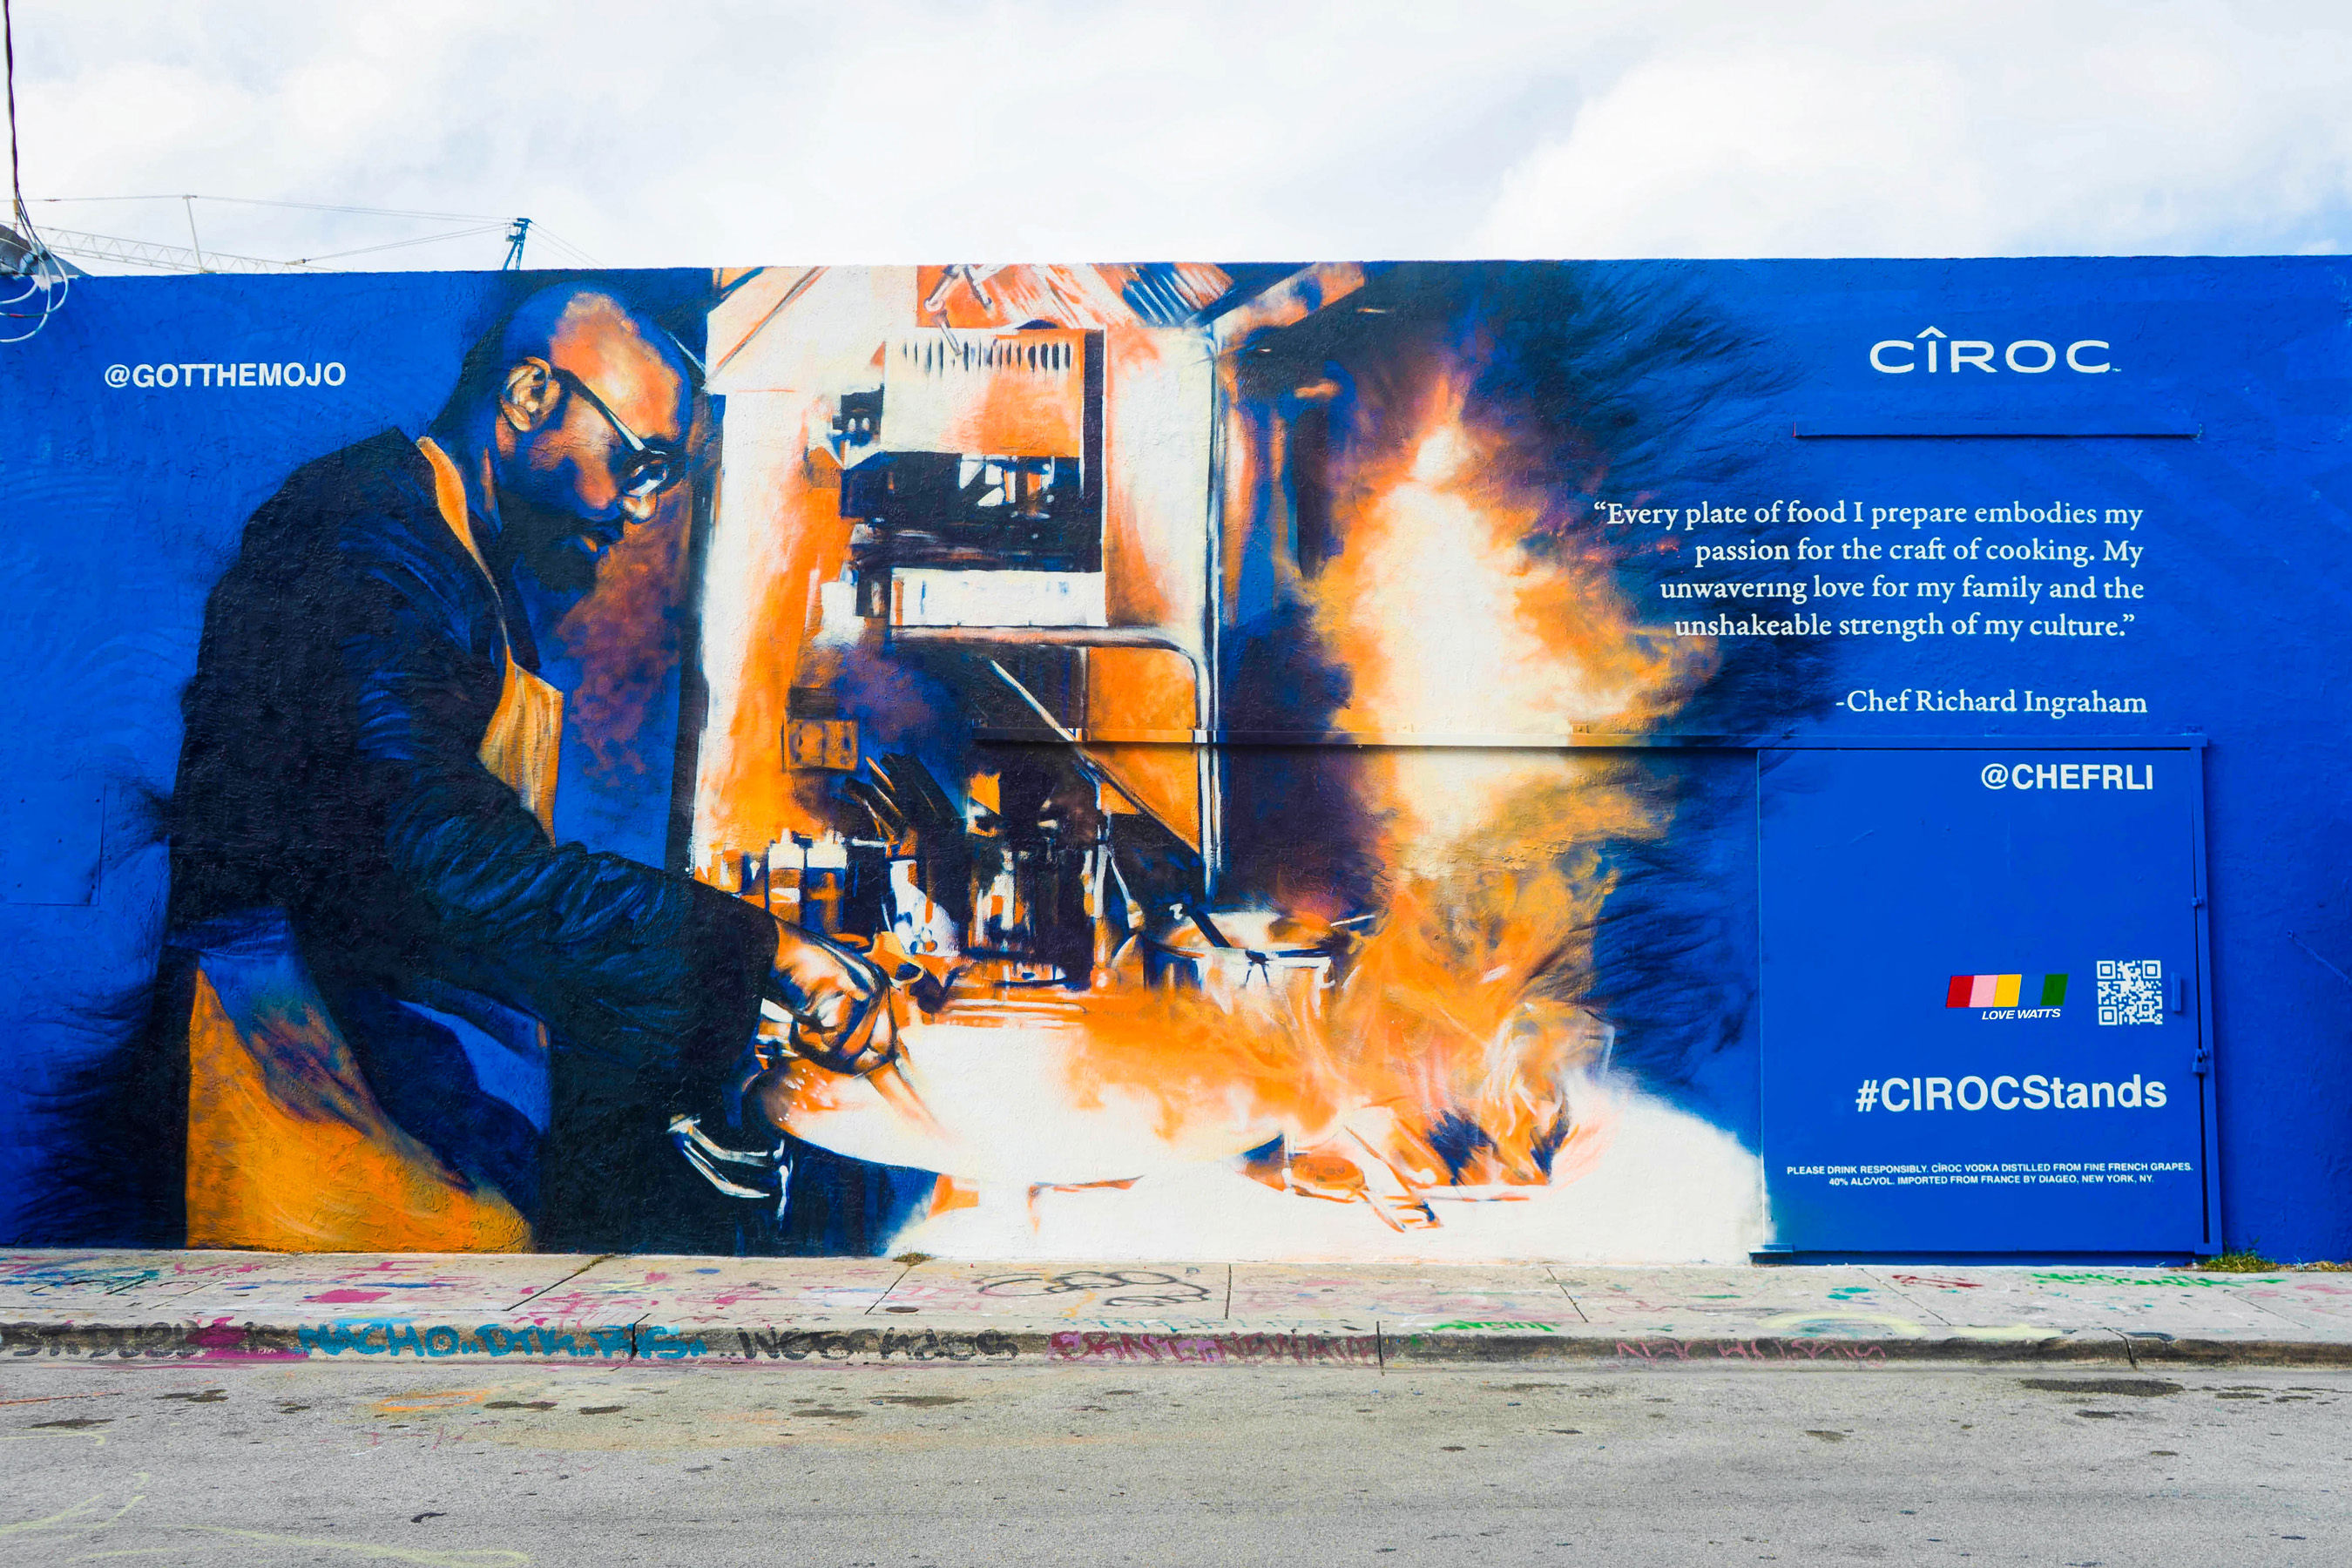 #CIROCStands Mural Of Richard Ingraham Painted By Artist Mojo In Miami To Celebrate Black Excellence